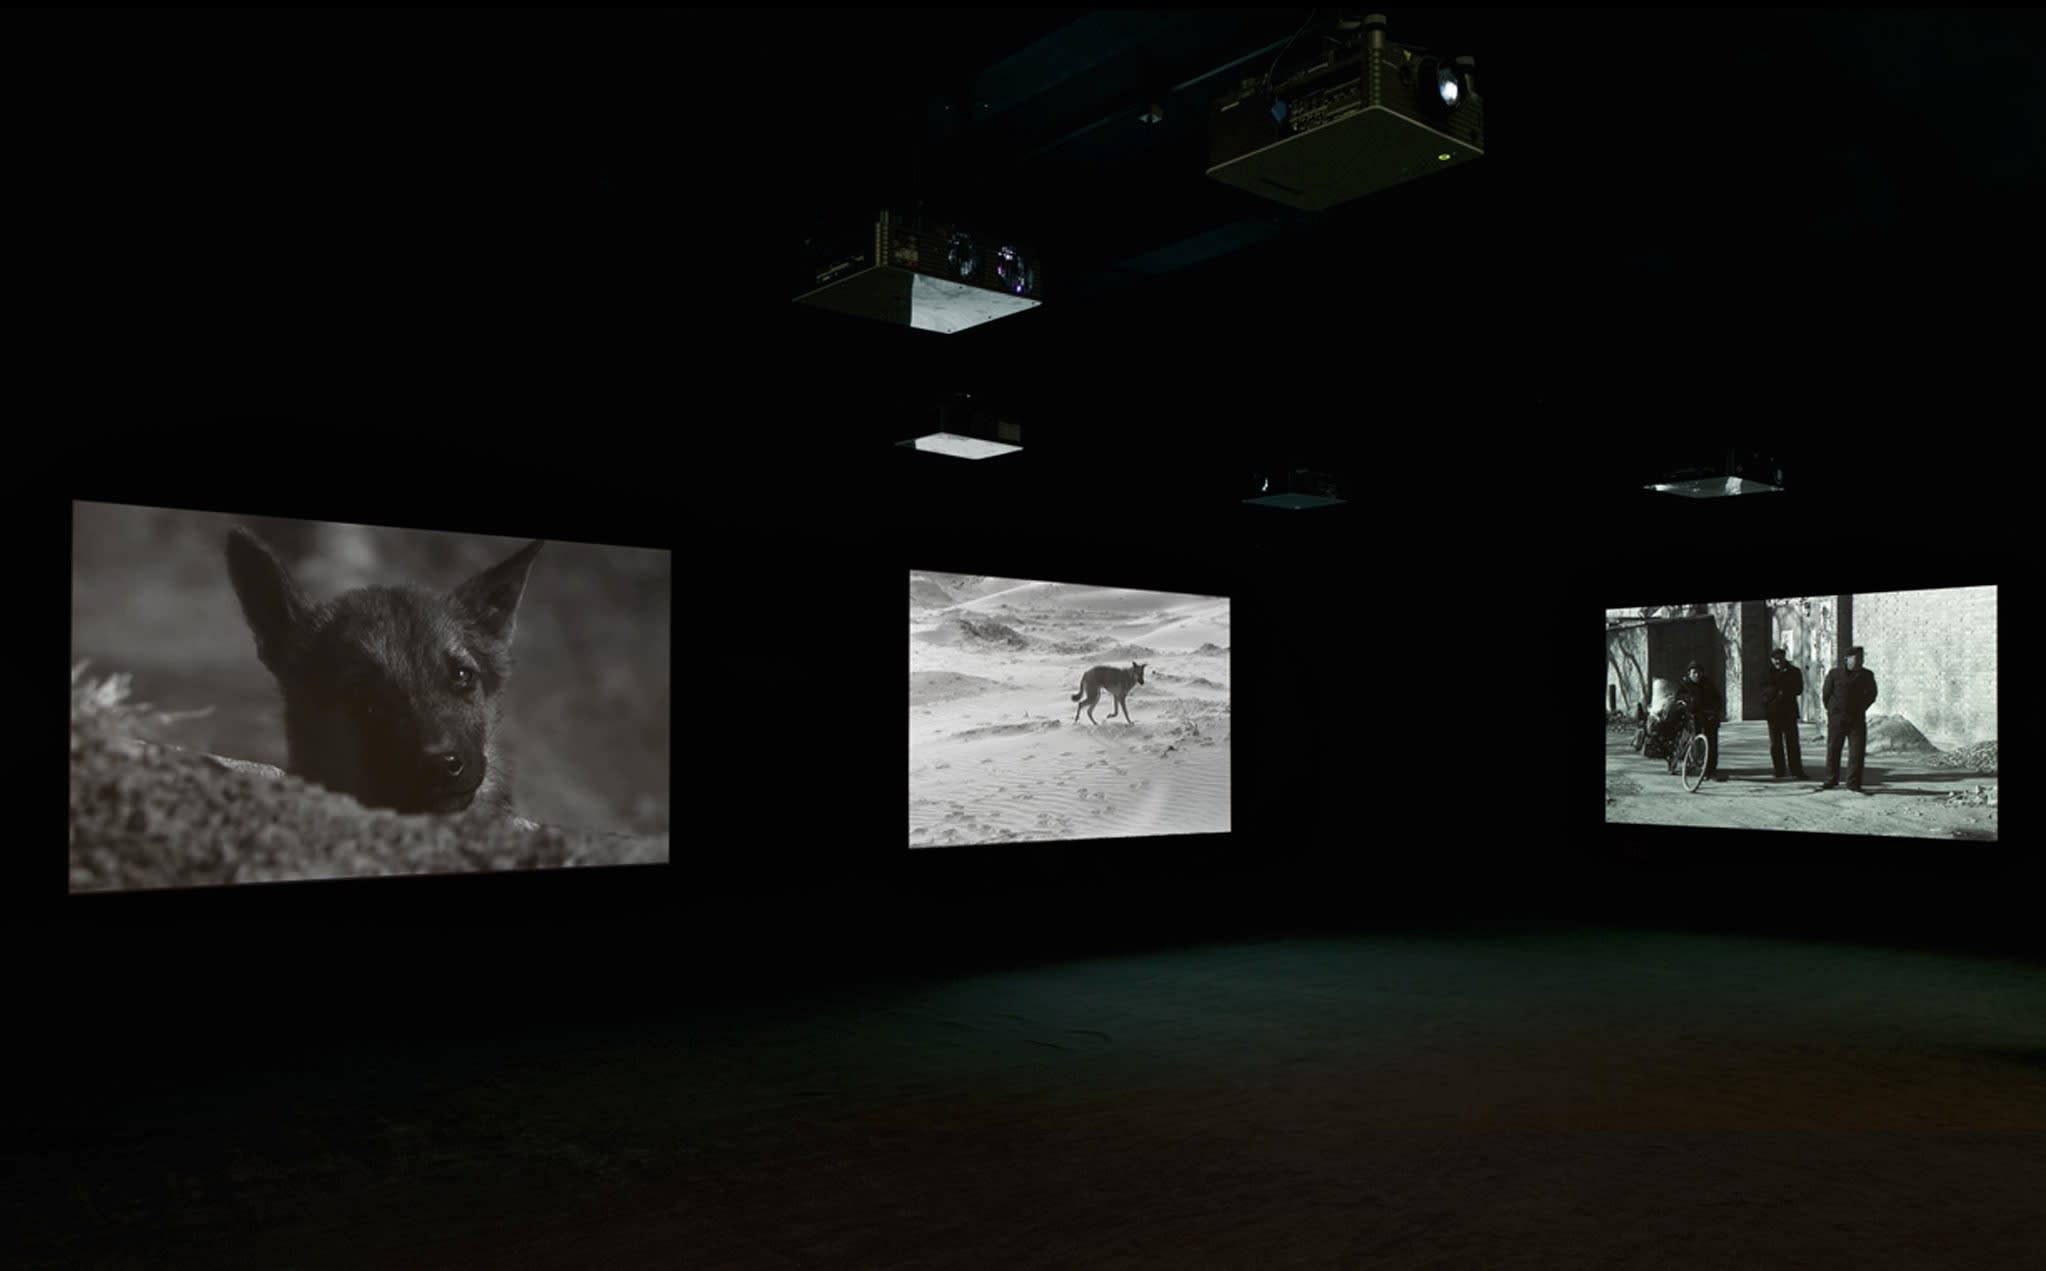 Three black and white images depicting various dogs and men talking are projected in a dark room.